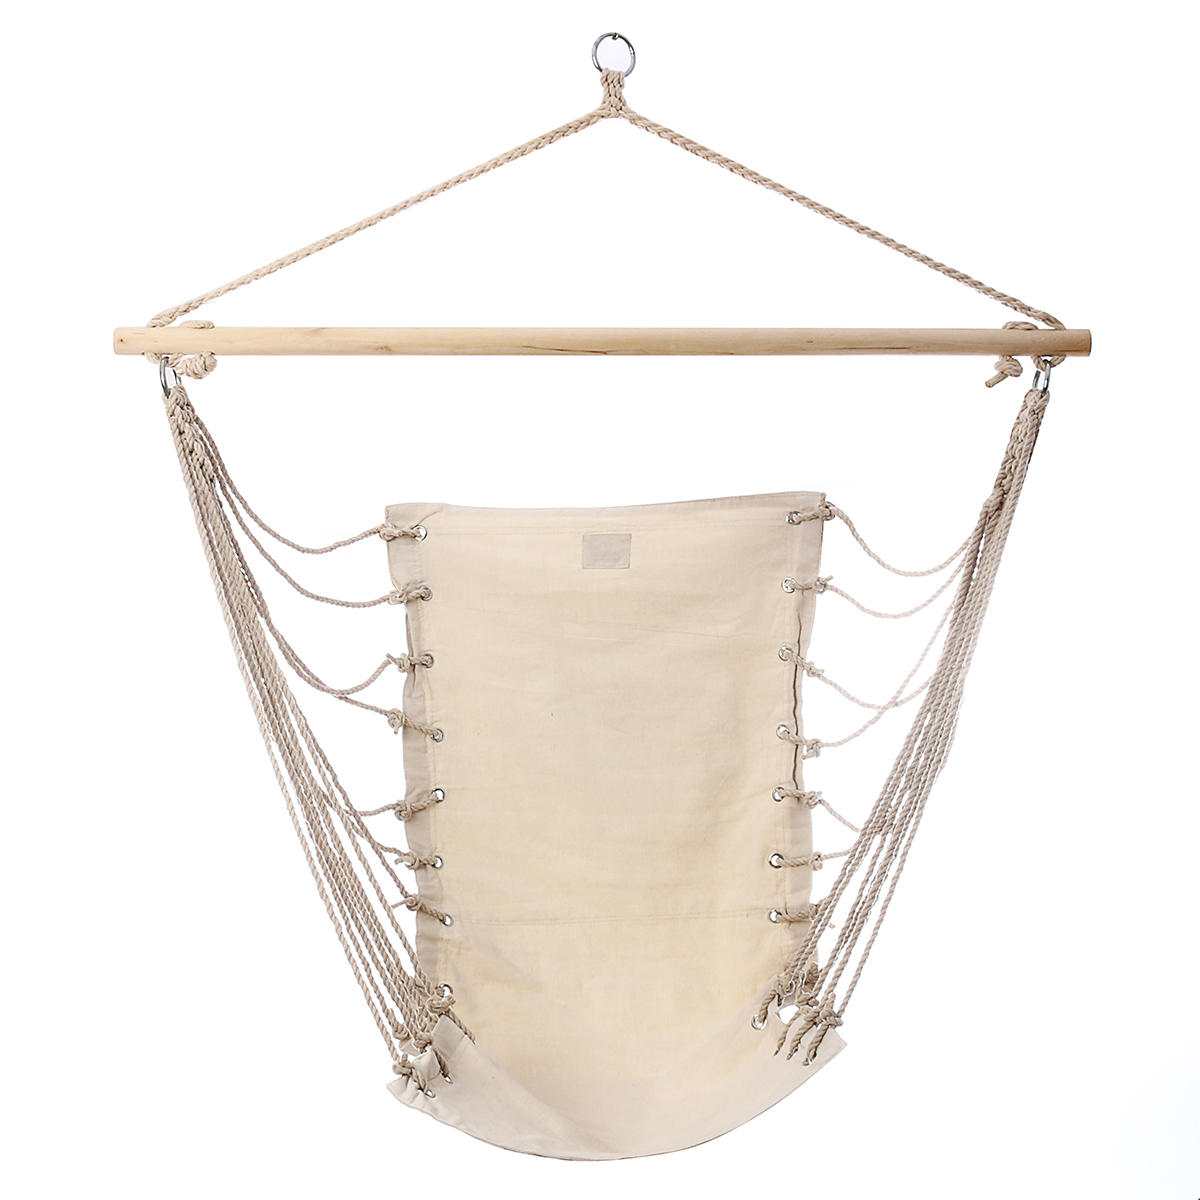 Prime 17X32Inch Outdoor Hammock Chair Hanging Chairs Swing Cotton Rope Net Swing Cradles Kids Adults Swing Seat Chair Creativecarmelina Interior Chair Design Creativecarmelinacom